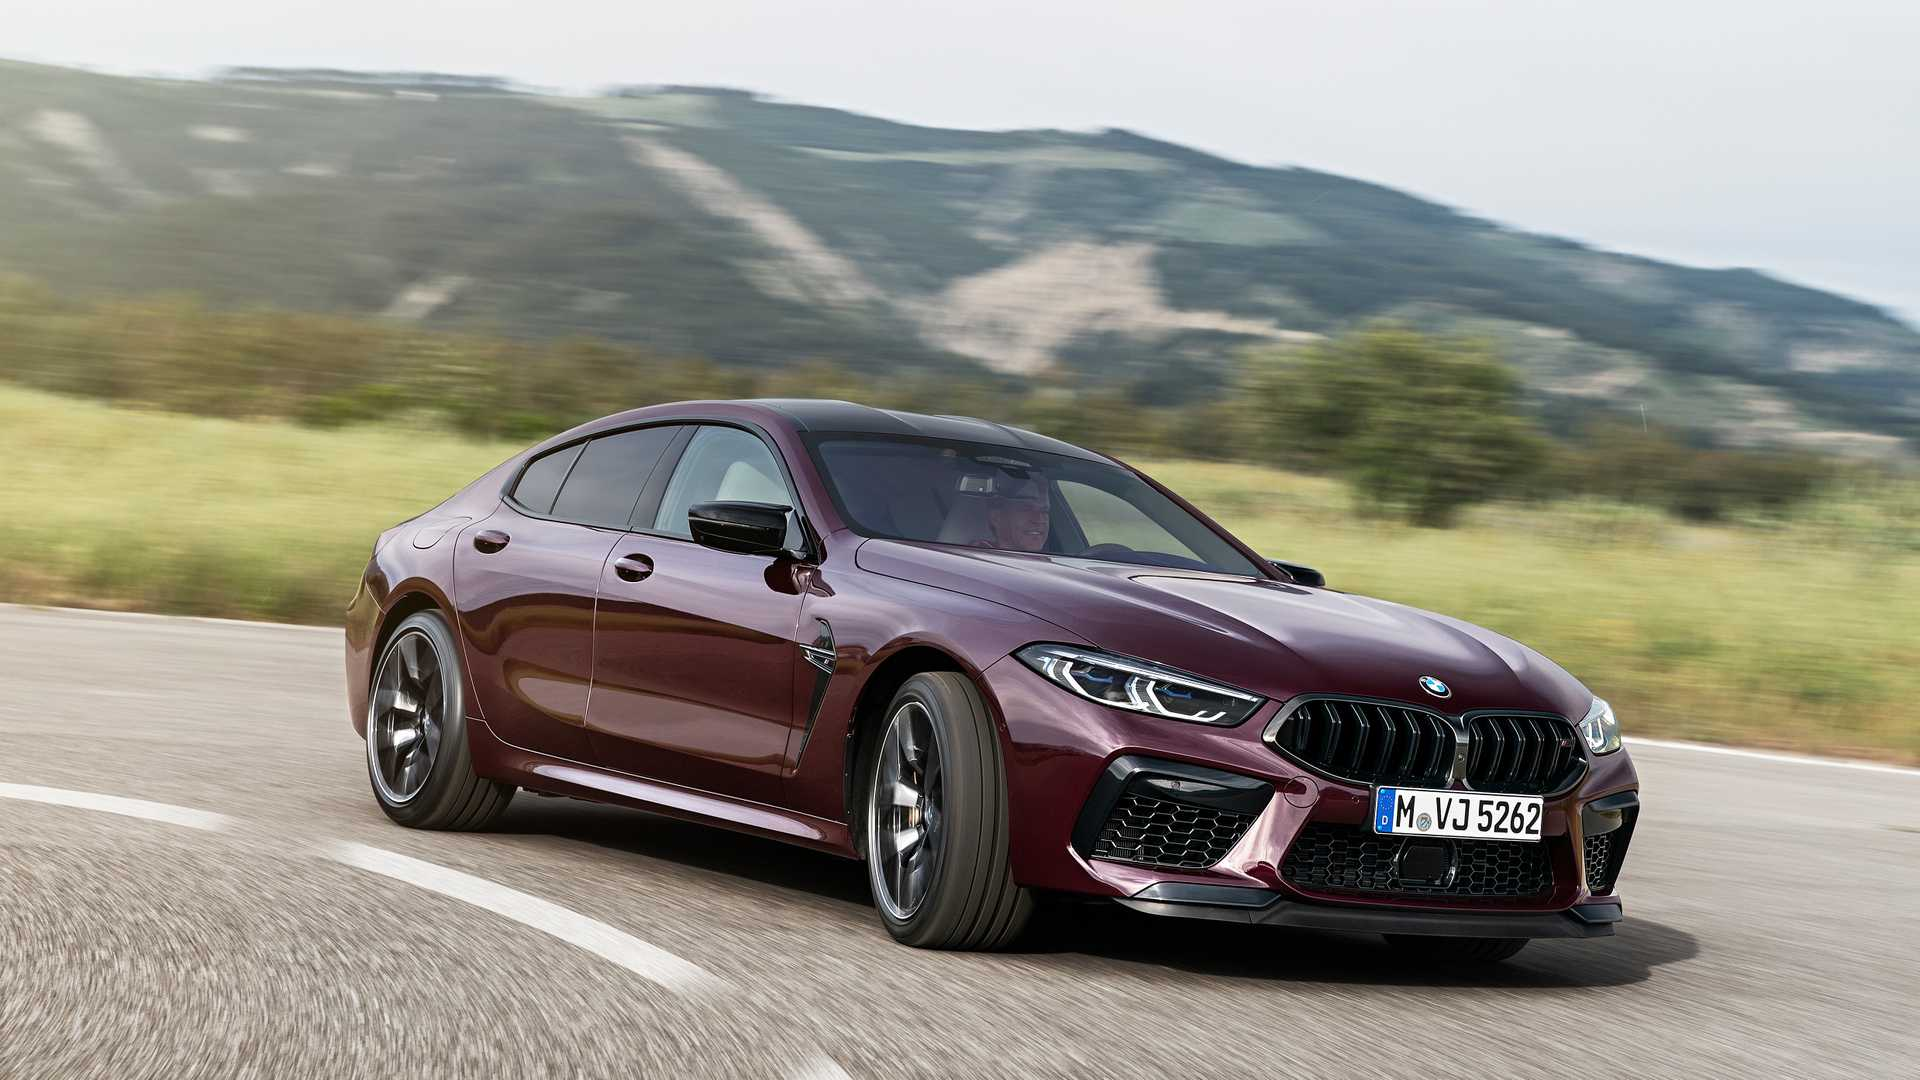 2020 BMW M8 Picture